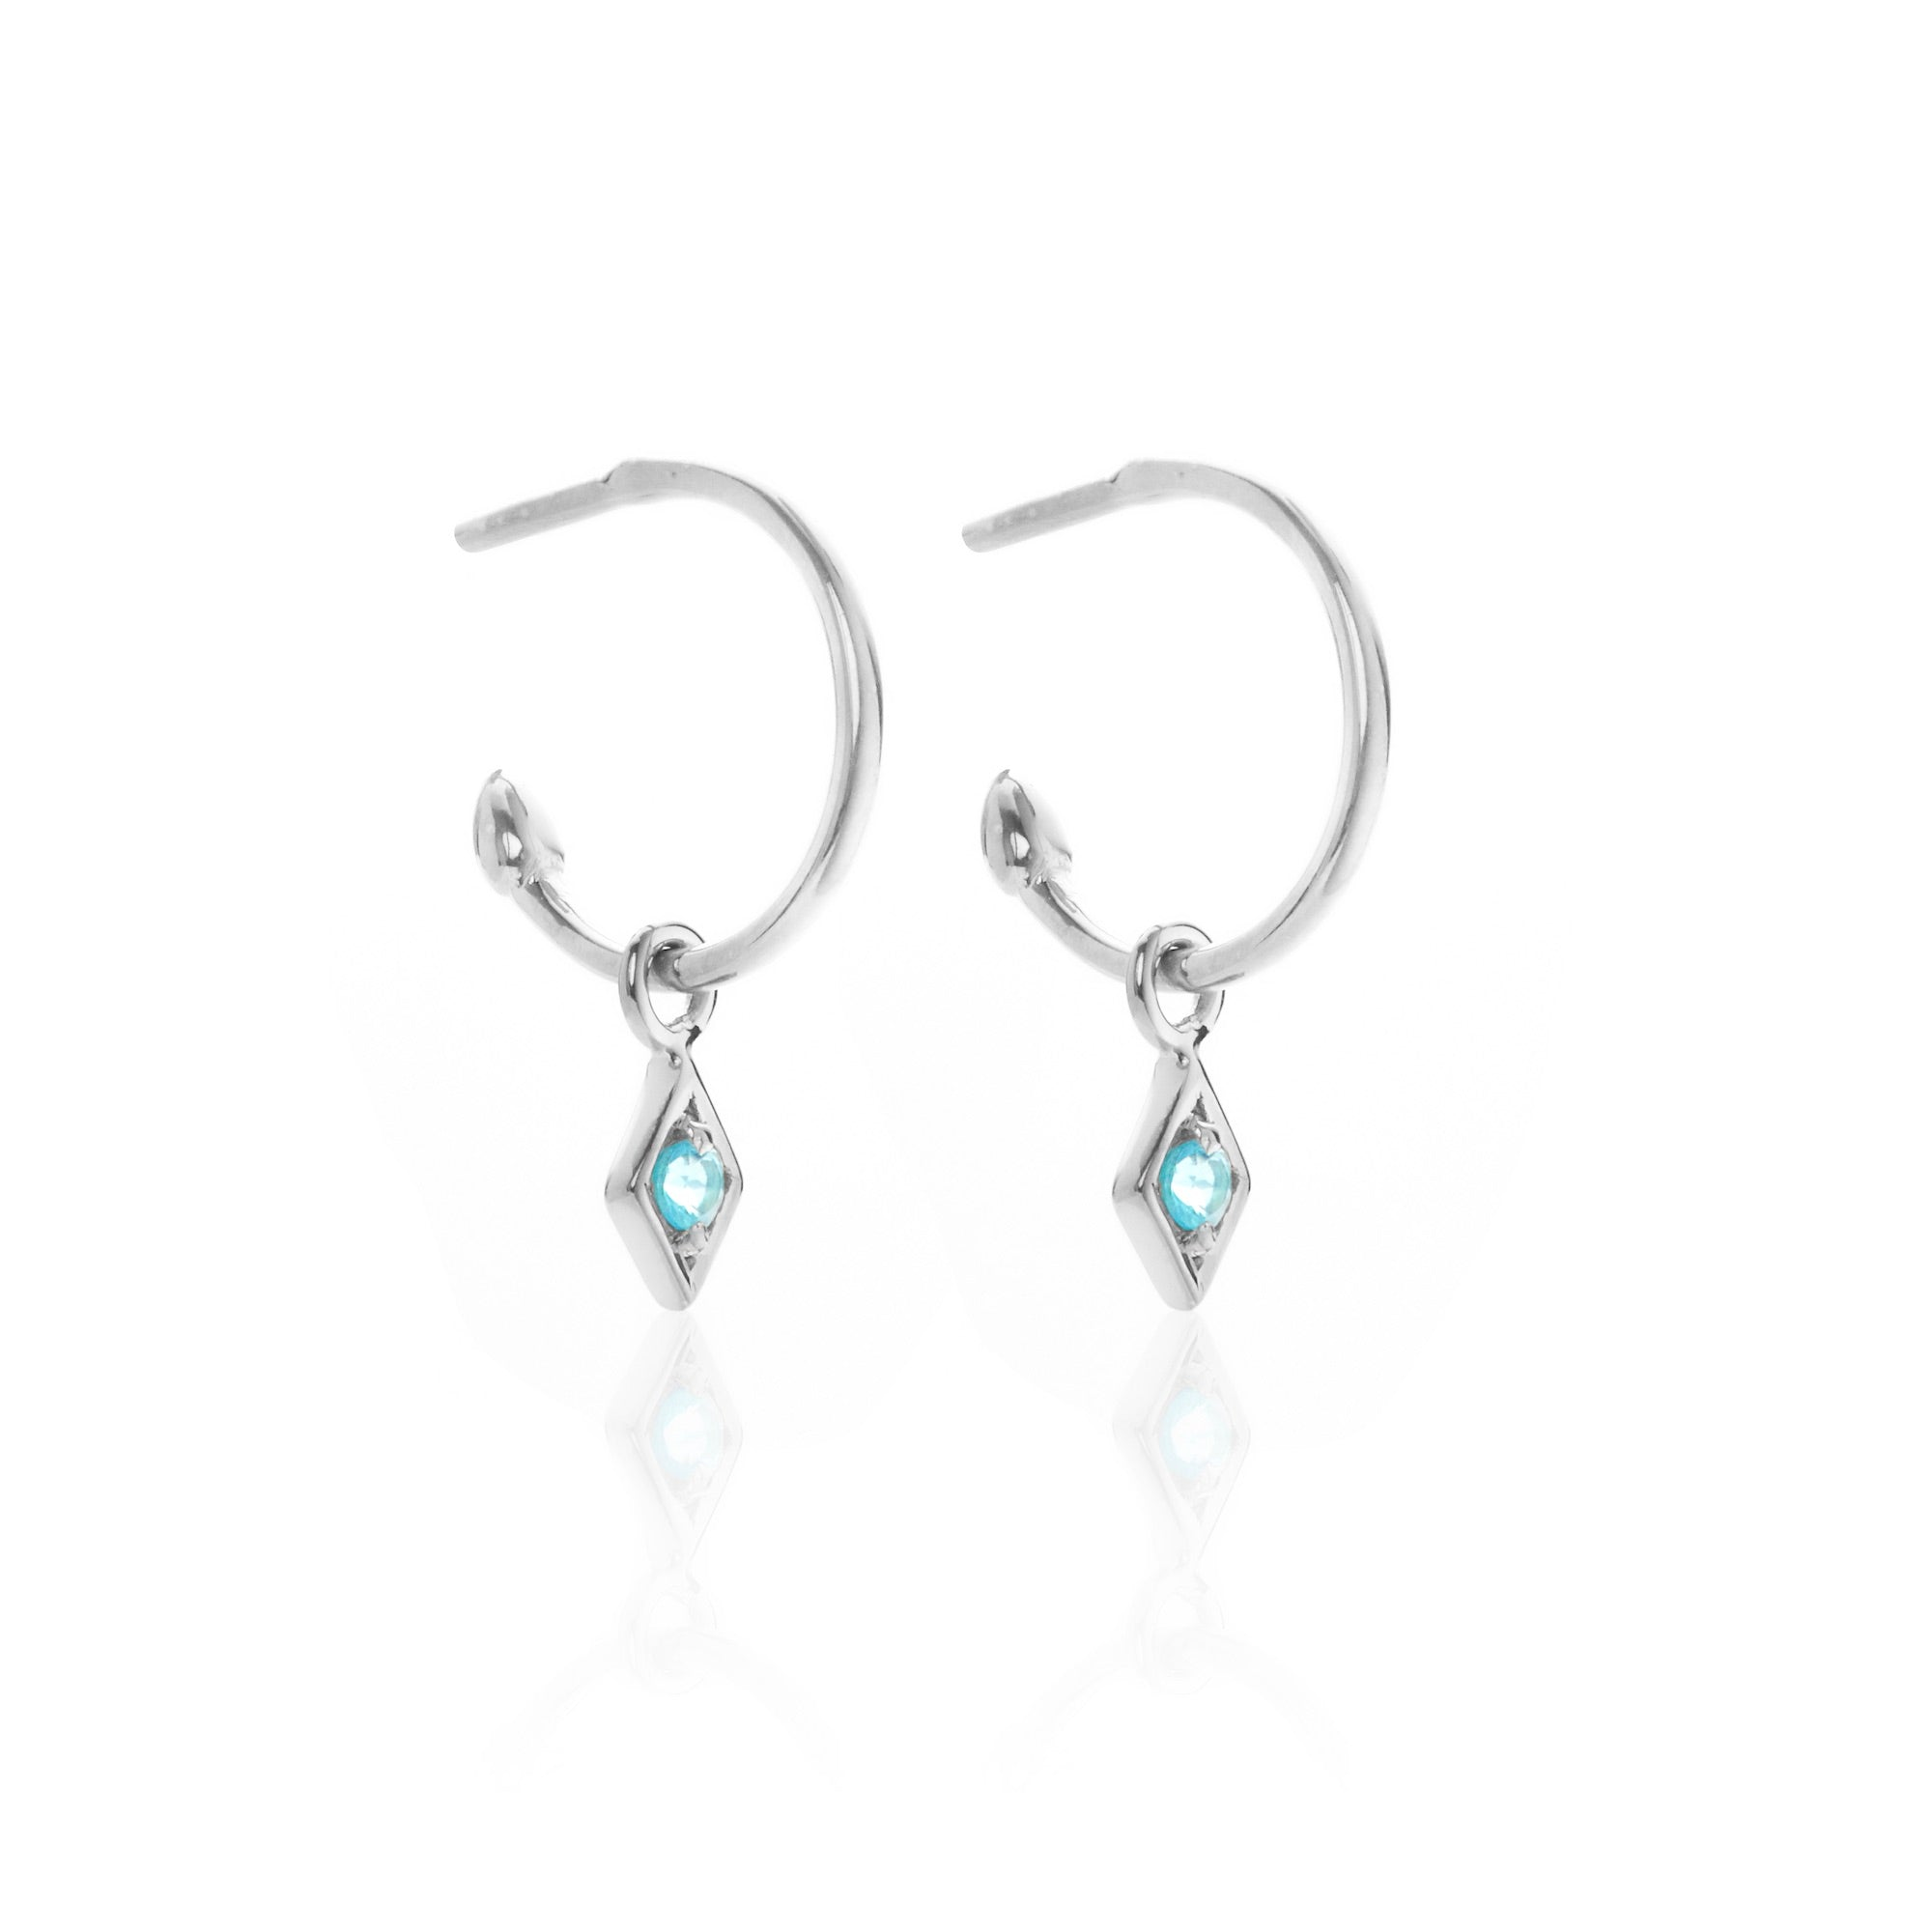 Silk & Steel Jewellery Superfine Keepsake Silver and Blue Topaz earrings